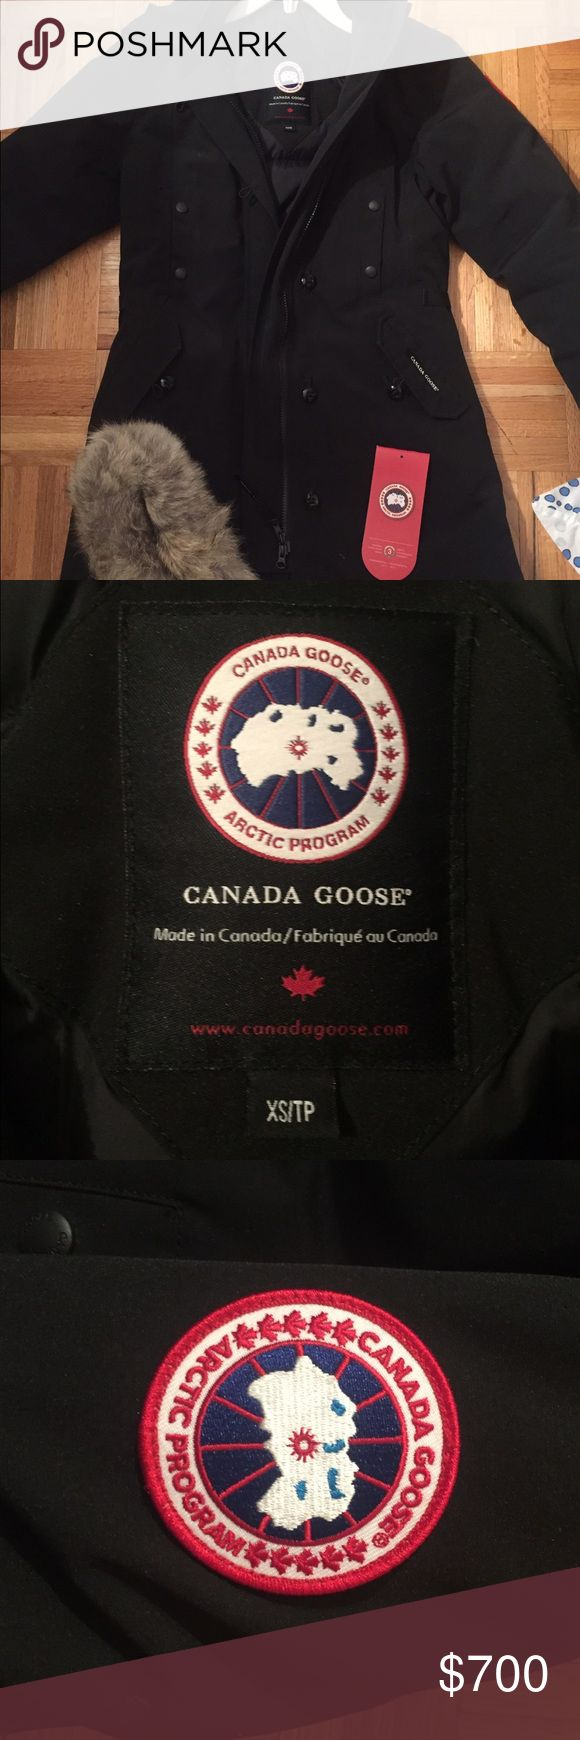 Canada Goose Kensington Parka Beautiful black Canada Goose Kensington parka that is unfortunately too small for me. I ripped the tags off (from excitement) but have never actually worn this jacket. In pristine condition! Canada Goose Jackets & Coats Puffers